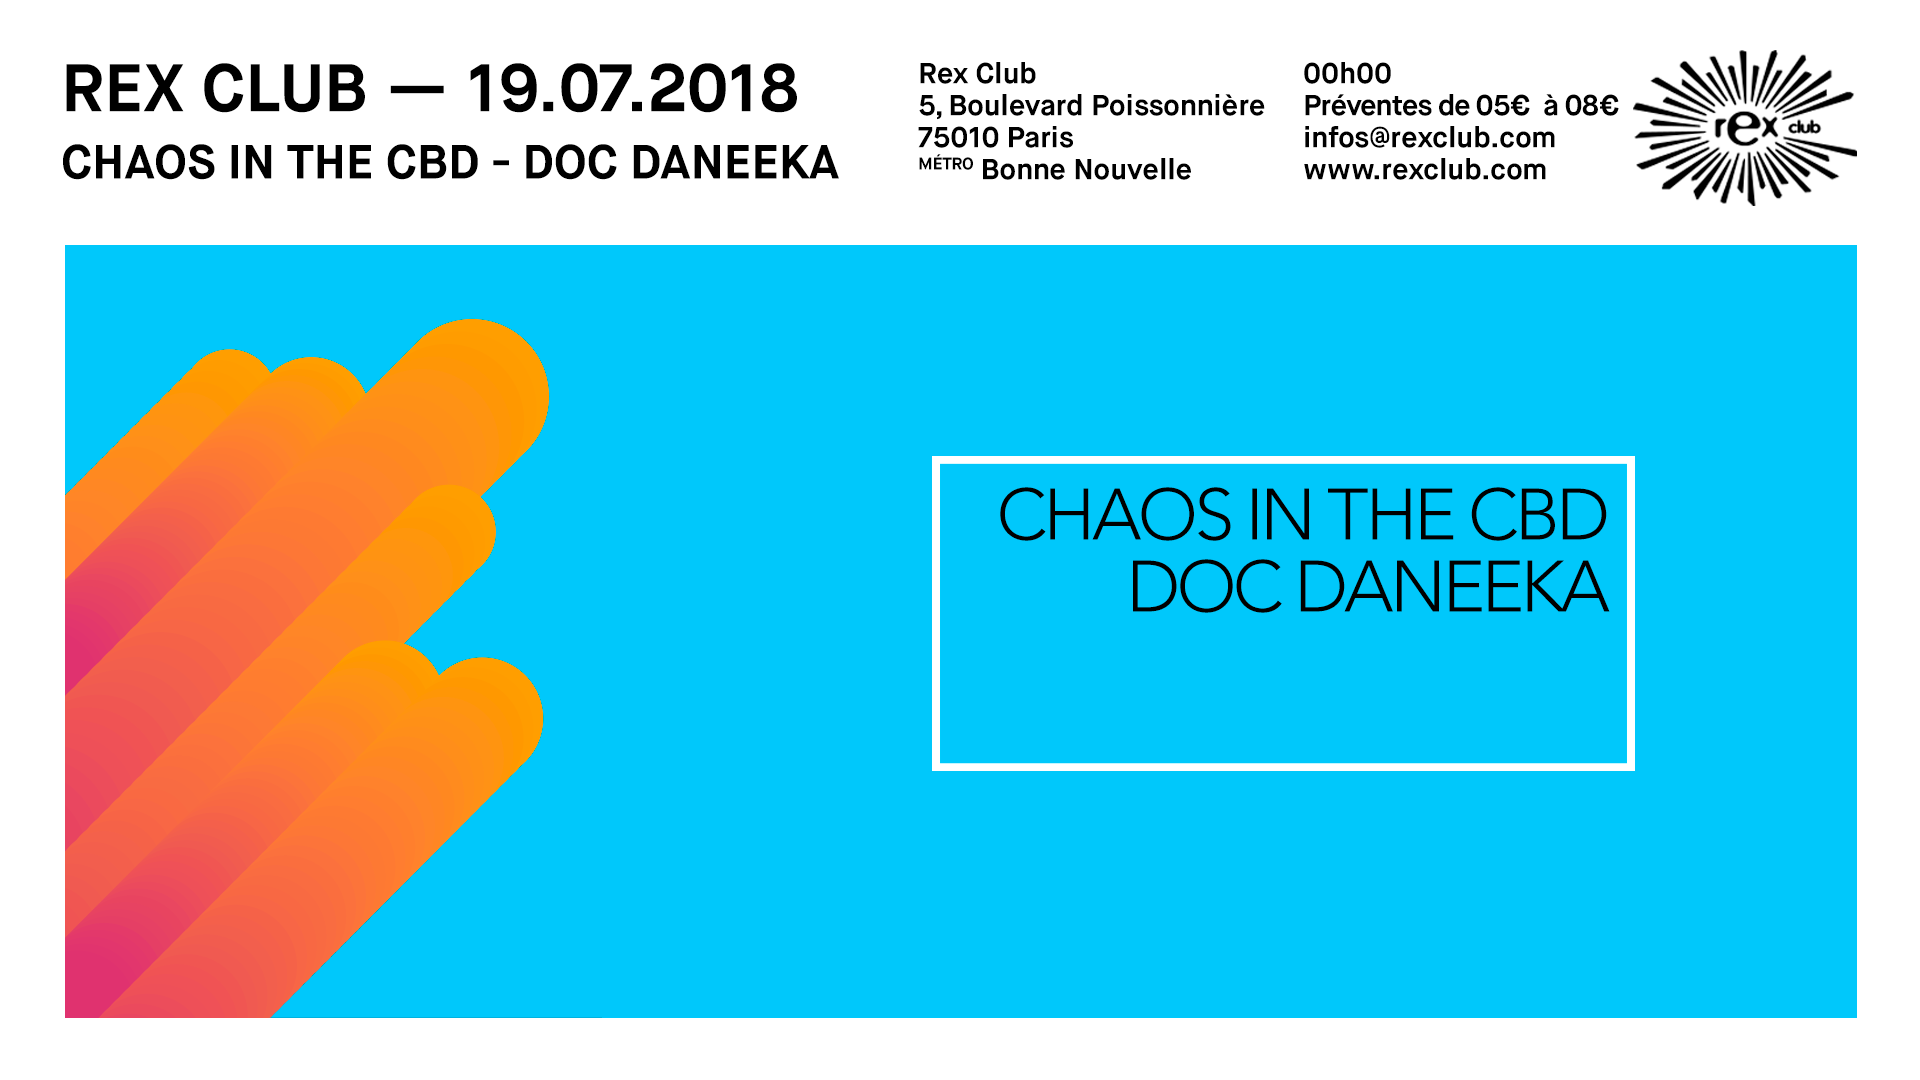 20180719_rex_club_Chaos_in_the_CBD_facebook_event_banner_1920x1080